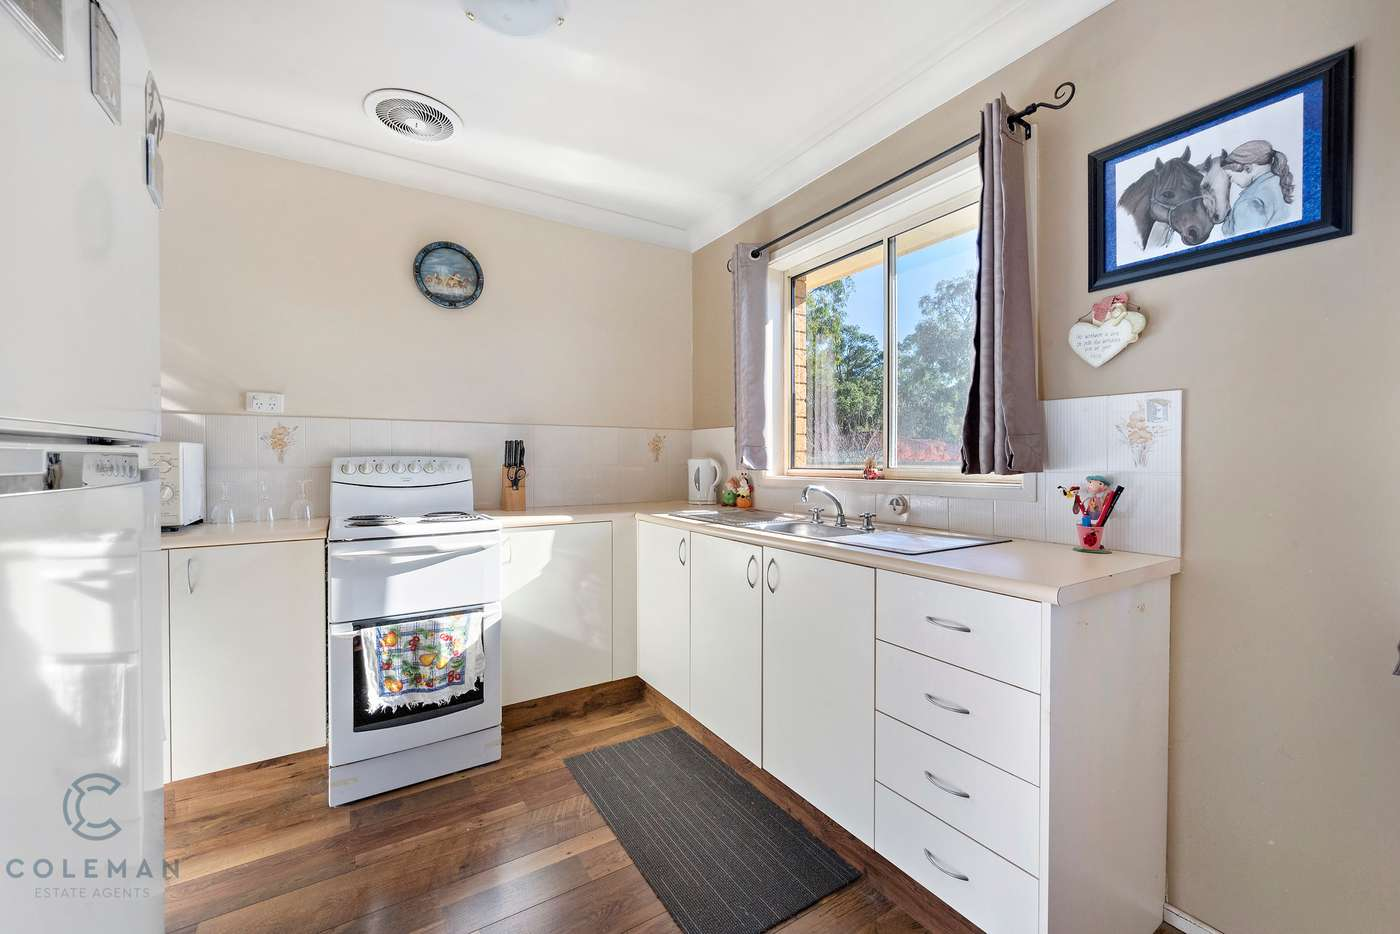 Sixth view of Homely house listing, 7a Anchorage Circle, Summerland Point NSW 2259